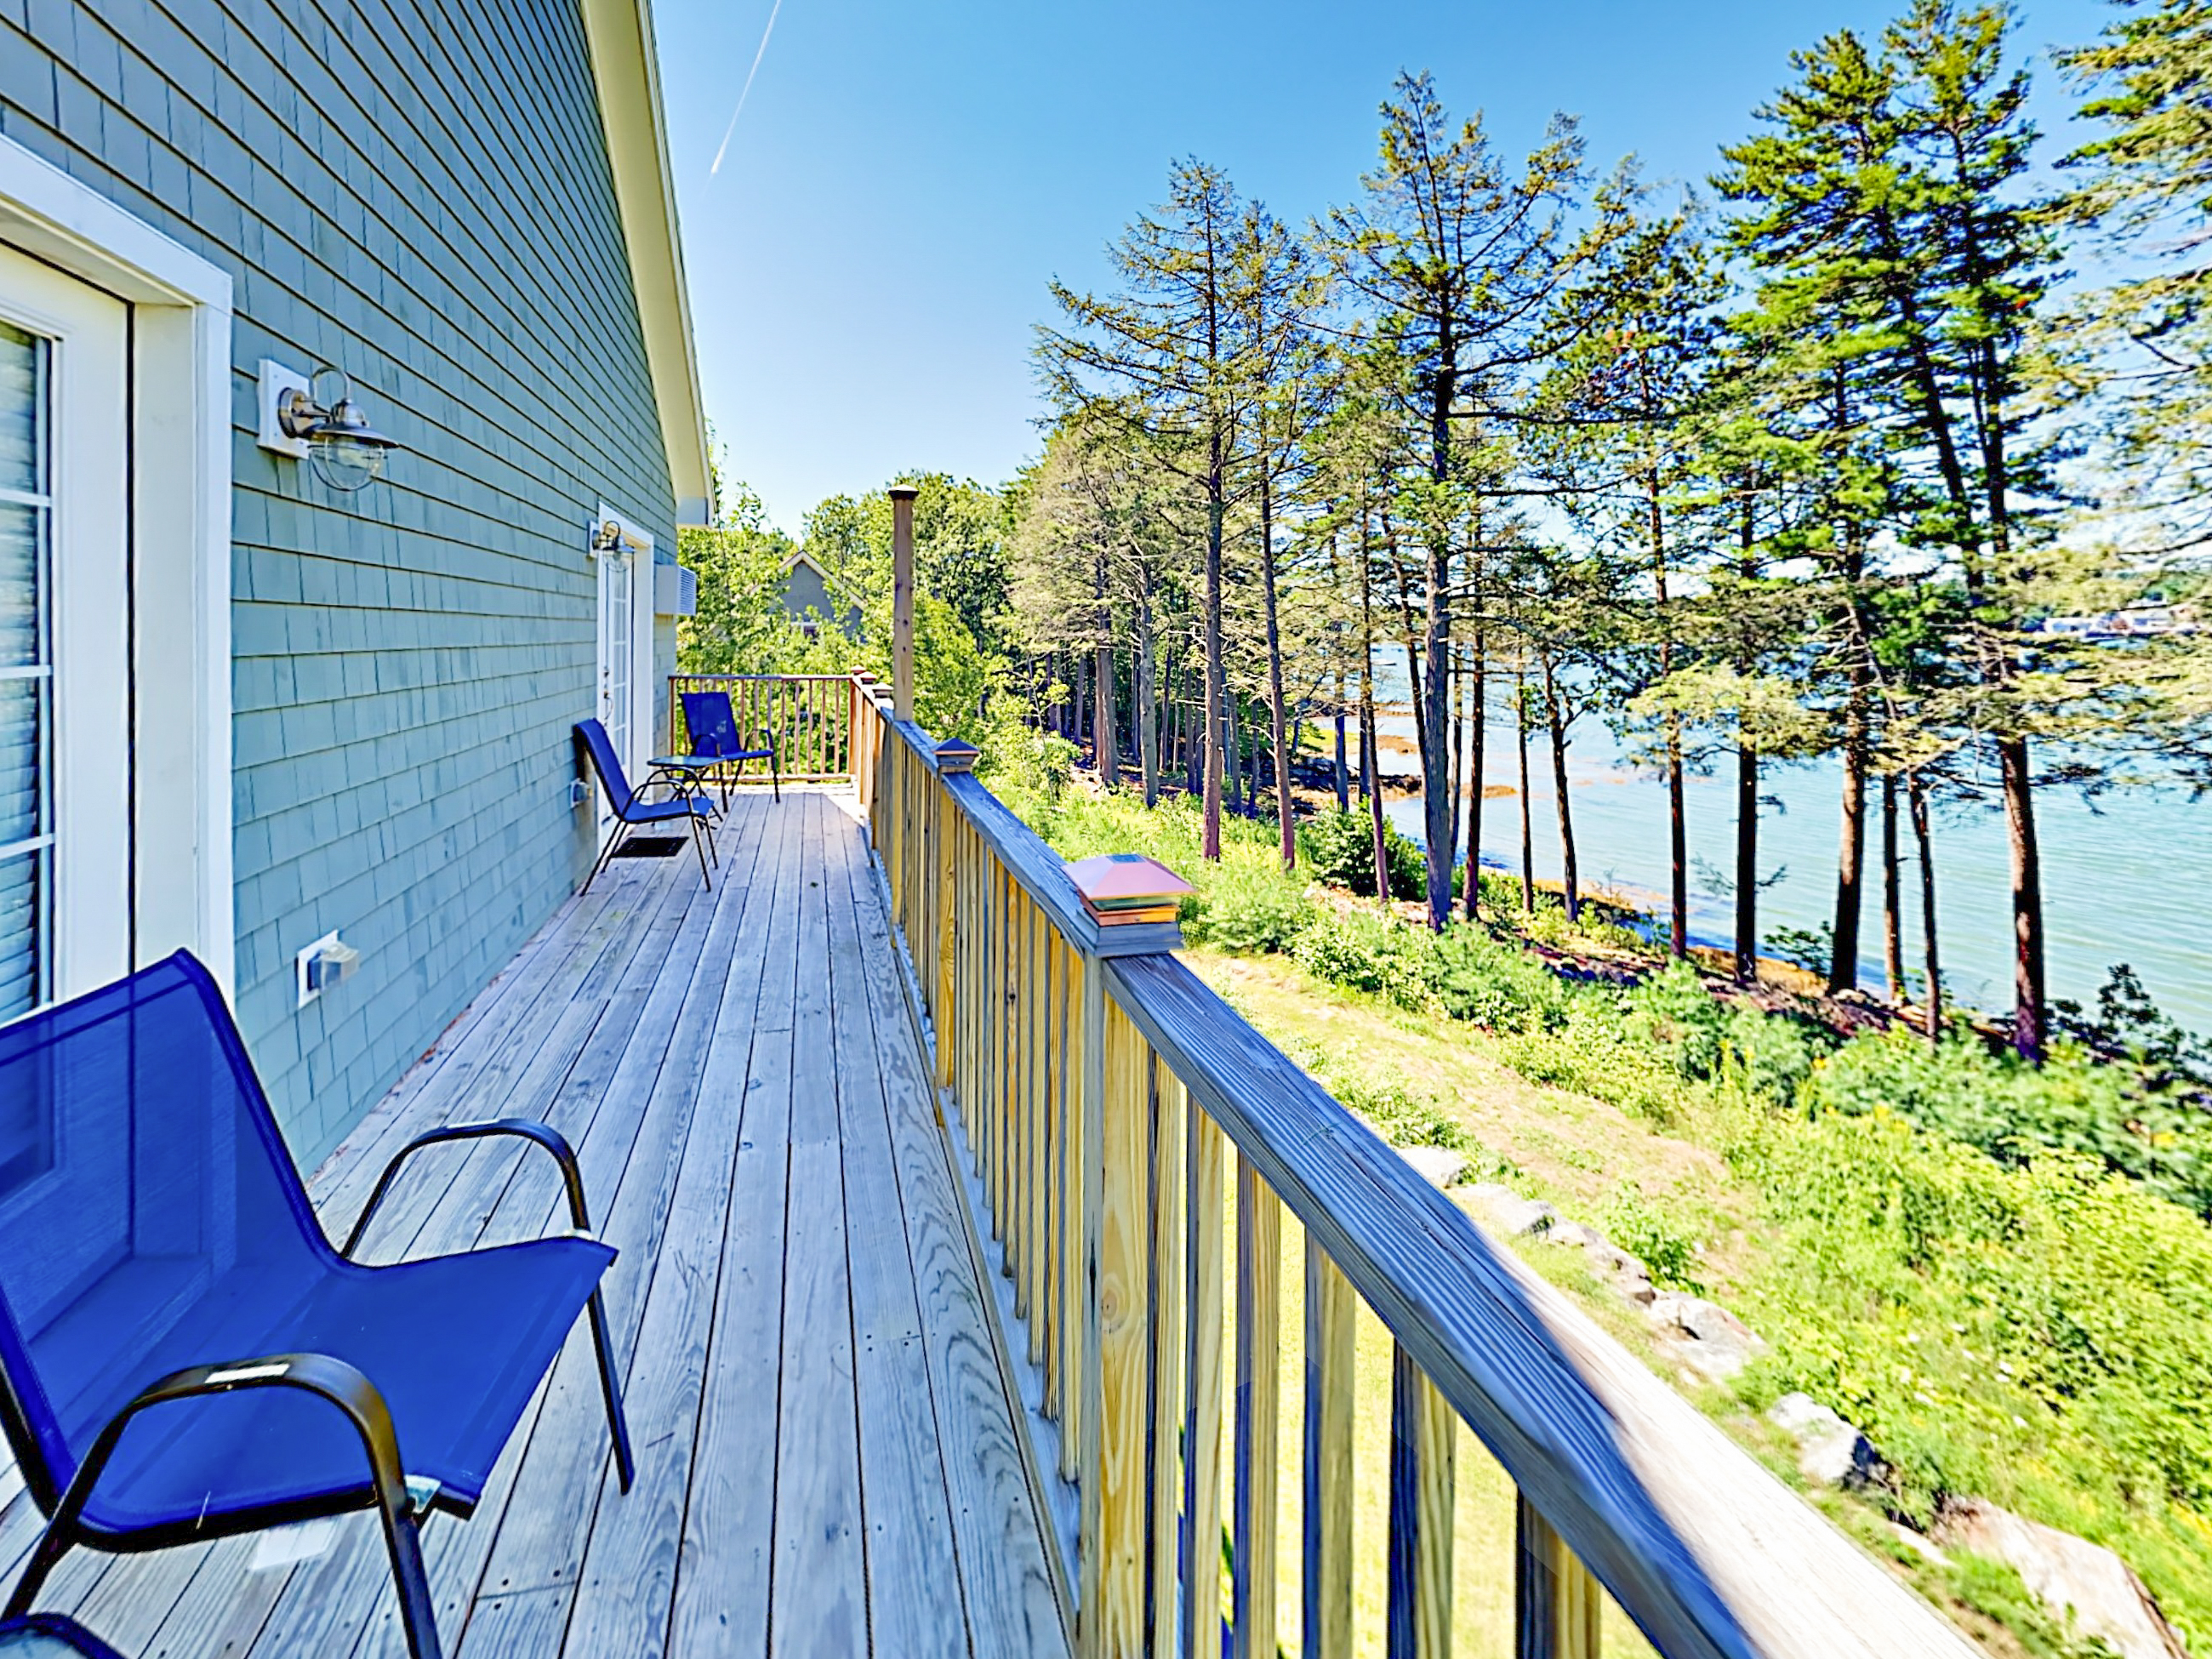 Edgecomb ME Vacation Rental Welcome to Edgecomb!